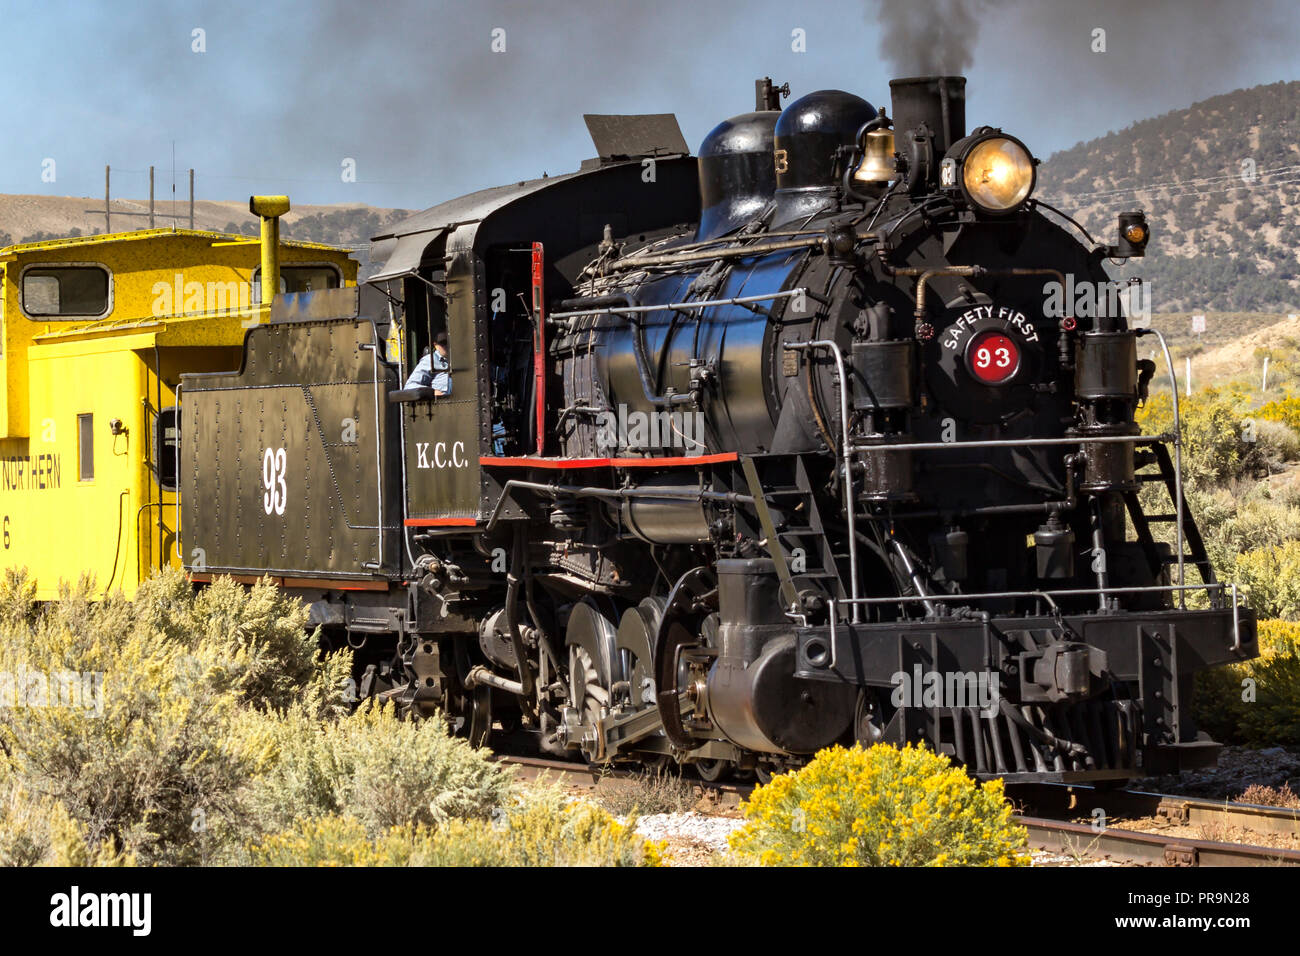 Former Kennecot Copper Corporation Steam Locomotive An Alco 2 8 0 Built In 1909 Is Now Operated By Nevada Northern Railway Museum In Ely Nevada Stock Photo Alamy